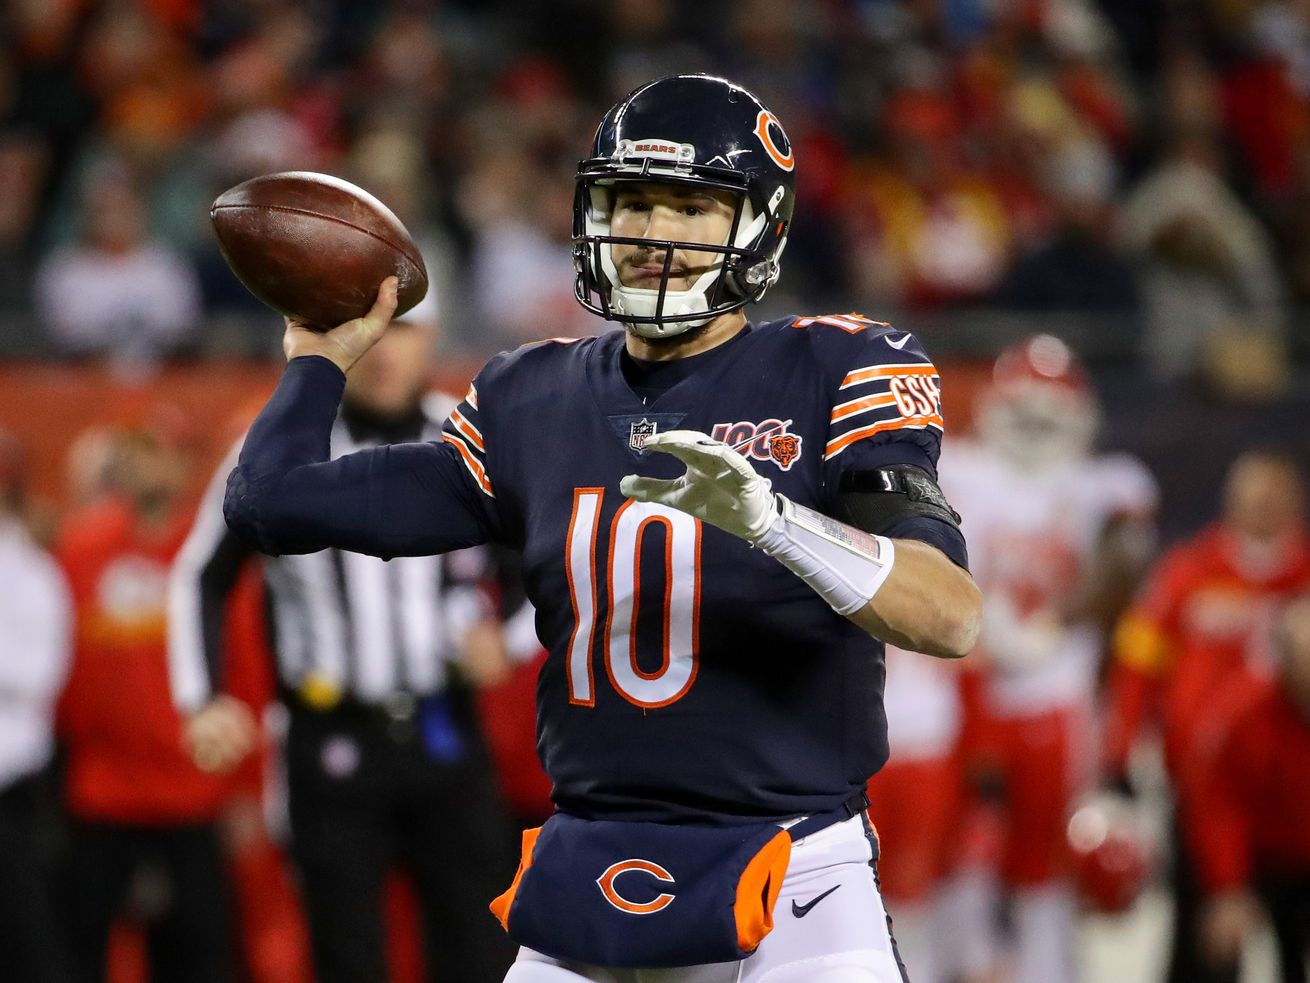 Mitch Trubisky on racial injustice: 'We must do better'